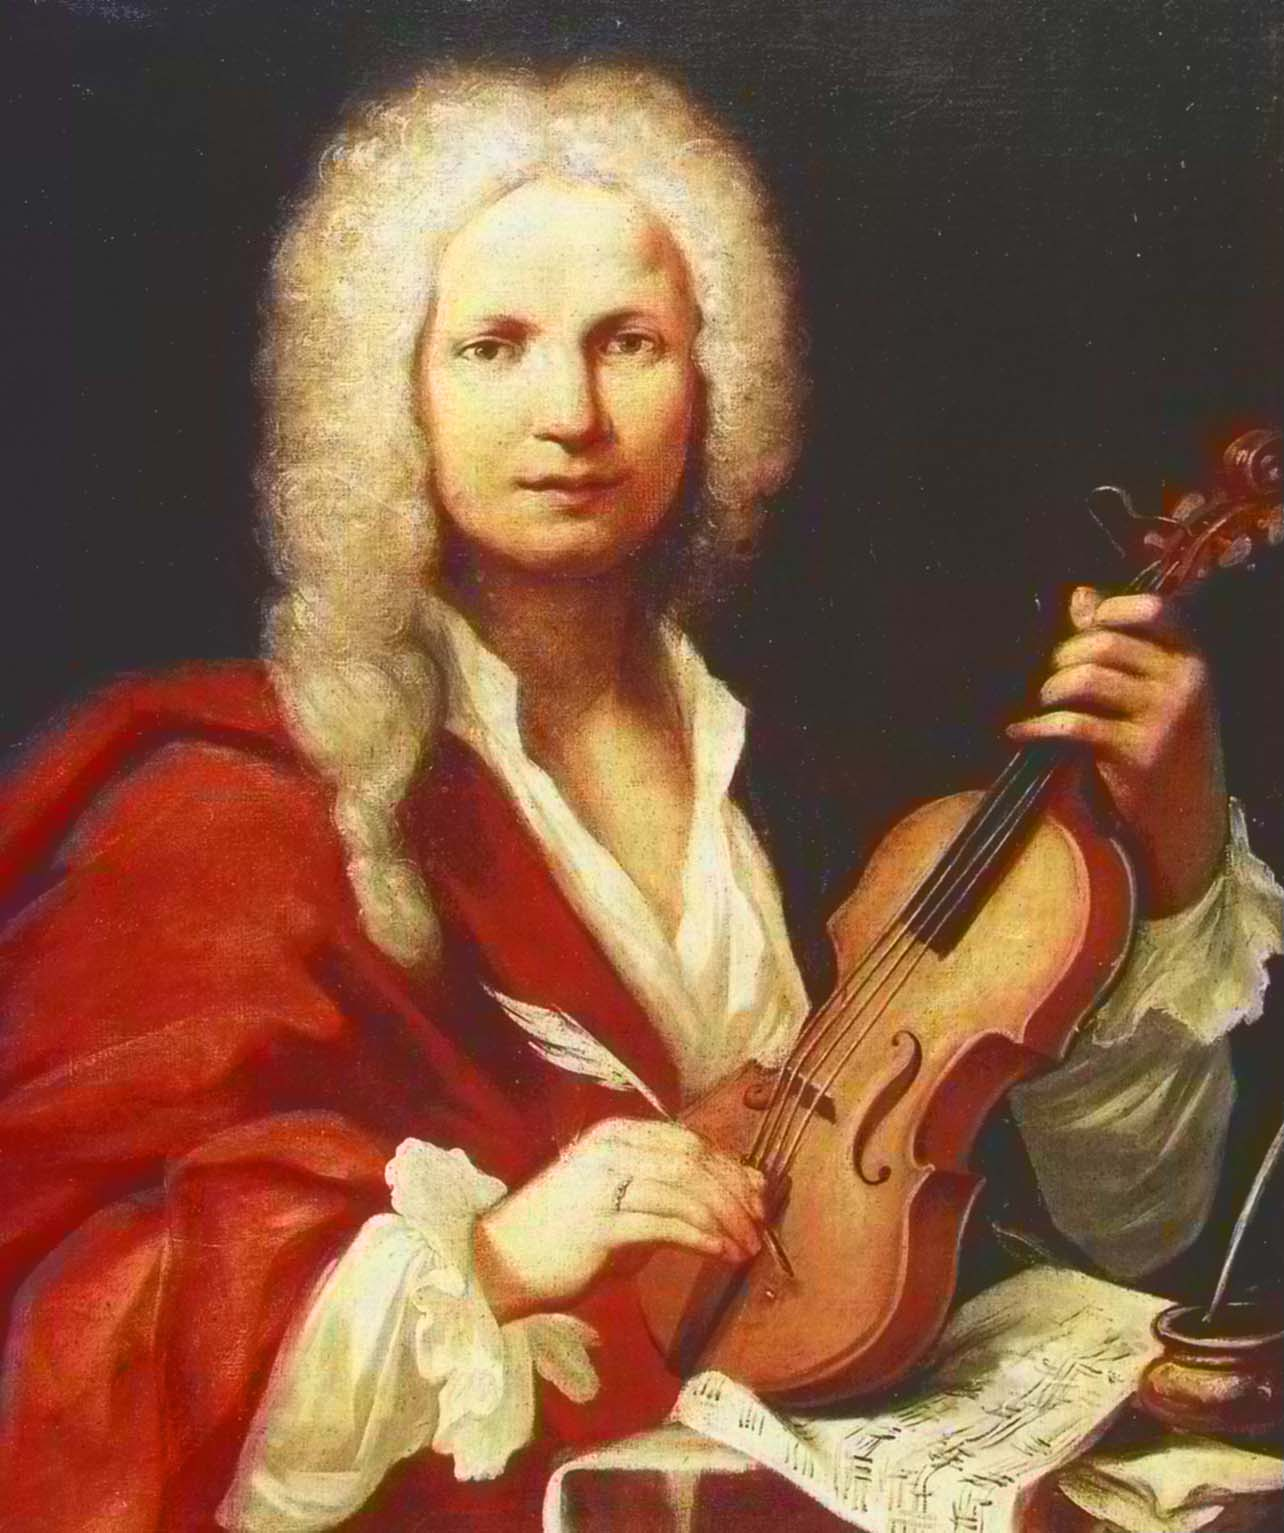 "Probable portrait of Antonio Vivaldi, around 1723. Bach rendered hommage to this great Italian composer in the opening bars of the tenor aria in the cantate, Wer weiß, wie nahe mir mein Ende?, BWV 27: it echoes the opening lines of Antonio Vivaldi's ""Spring"" of the Four Seasons, which was published the year before in 1725."